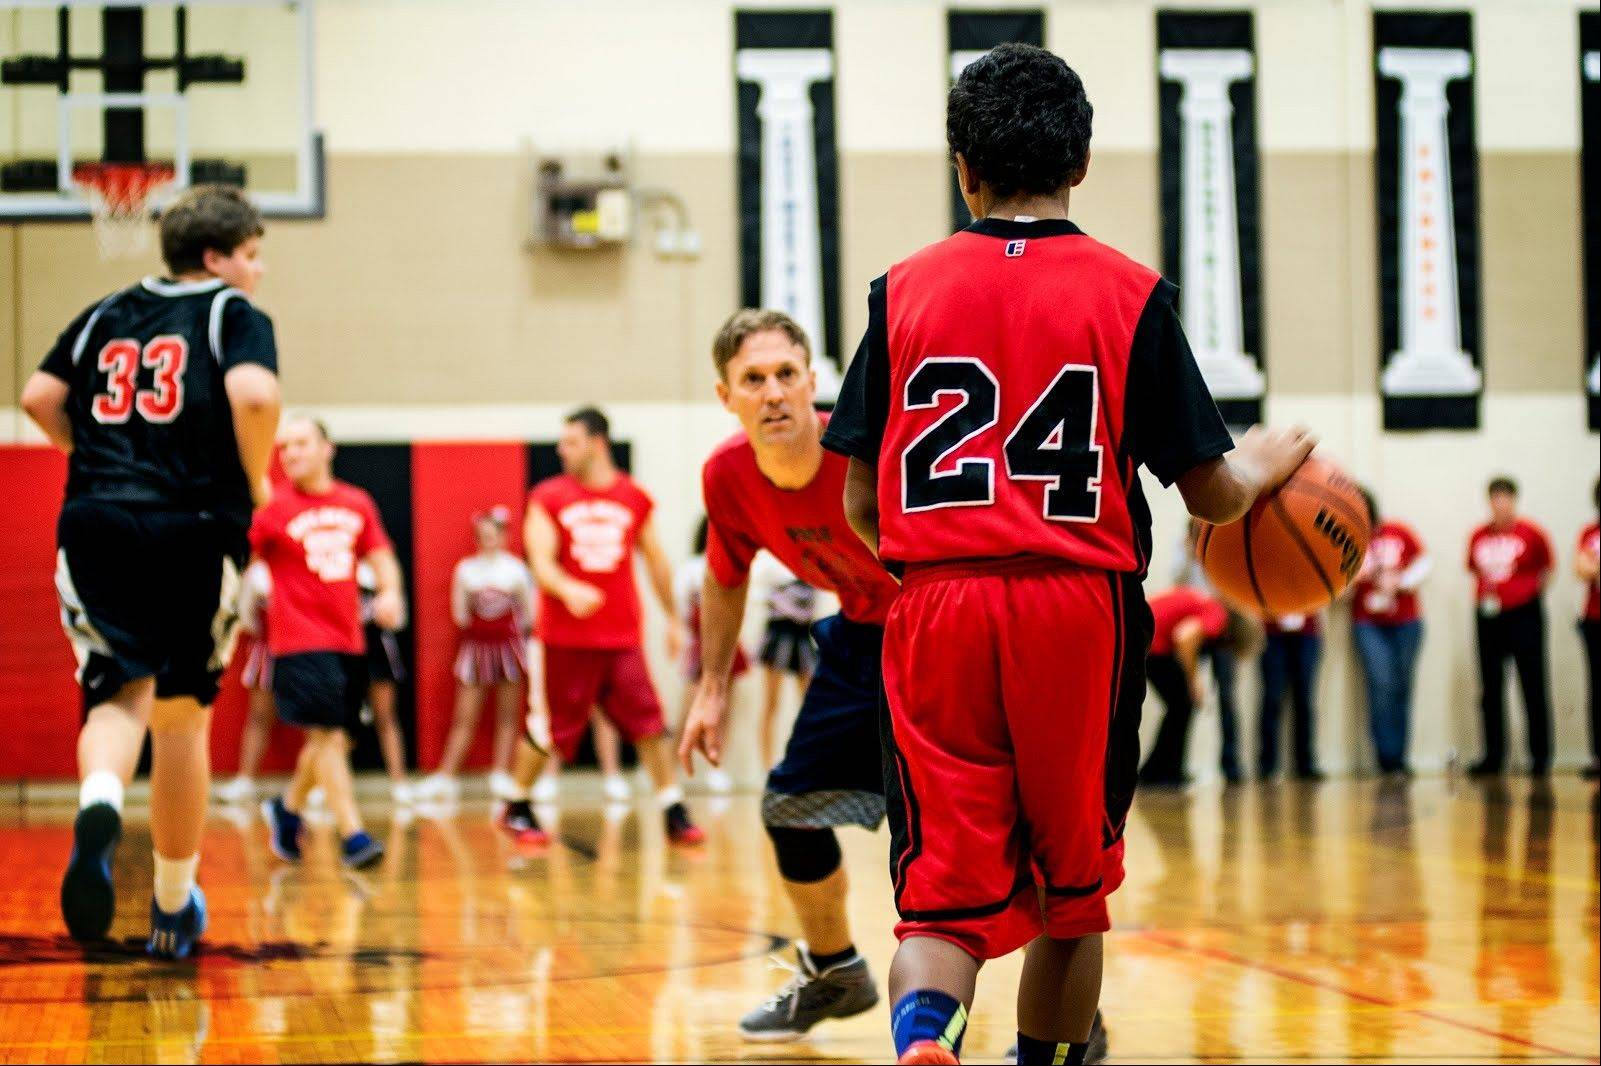 Students and faculty play in the third annual �Holmes Helping Homes� Basketball Charity Event on Nov. 20. Money raised helps needy families in the Holmes Jr. High community.